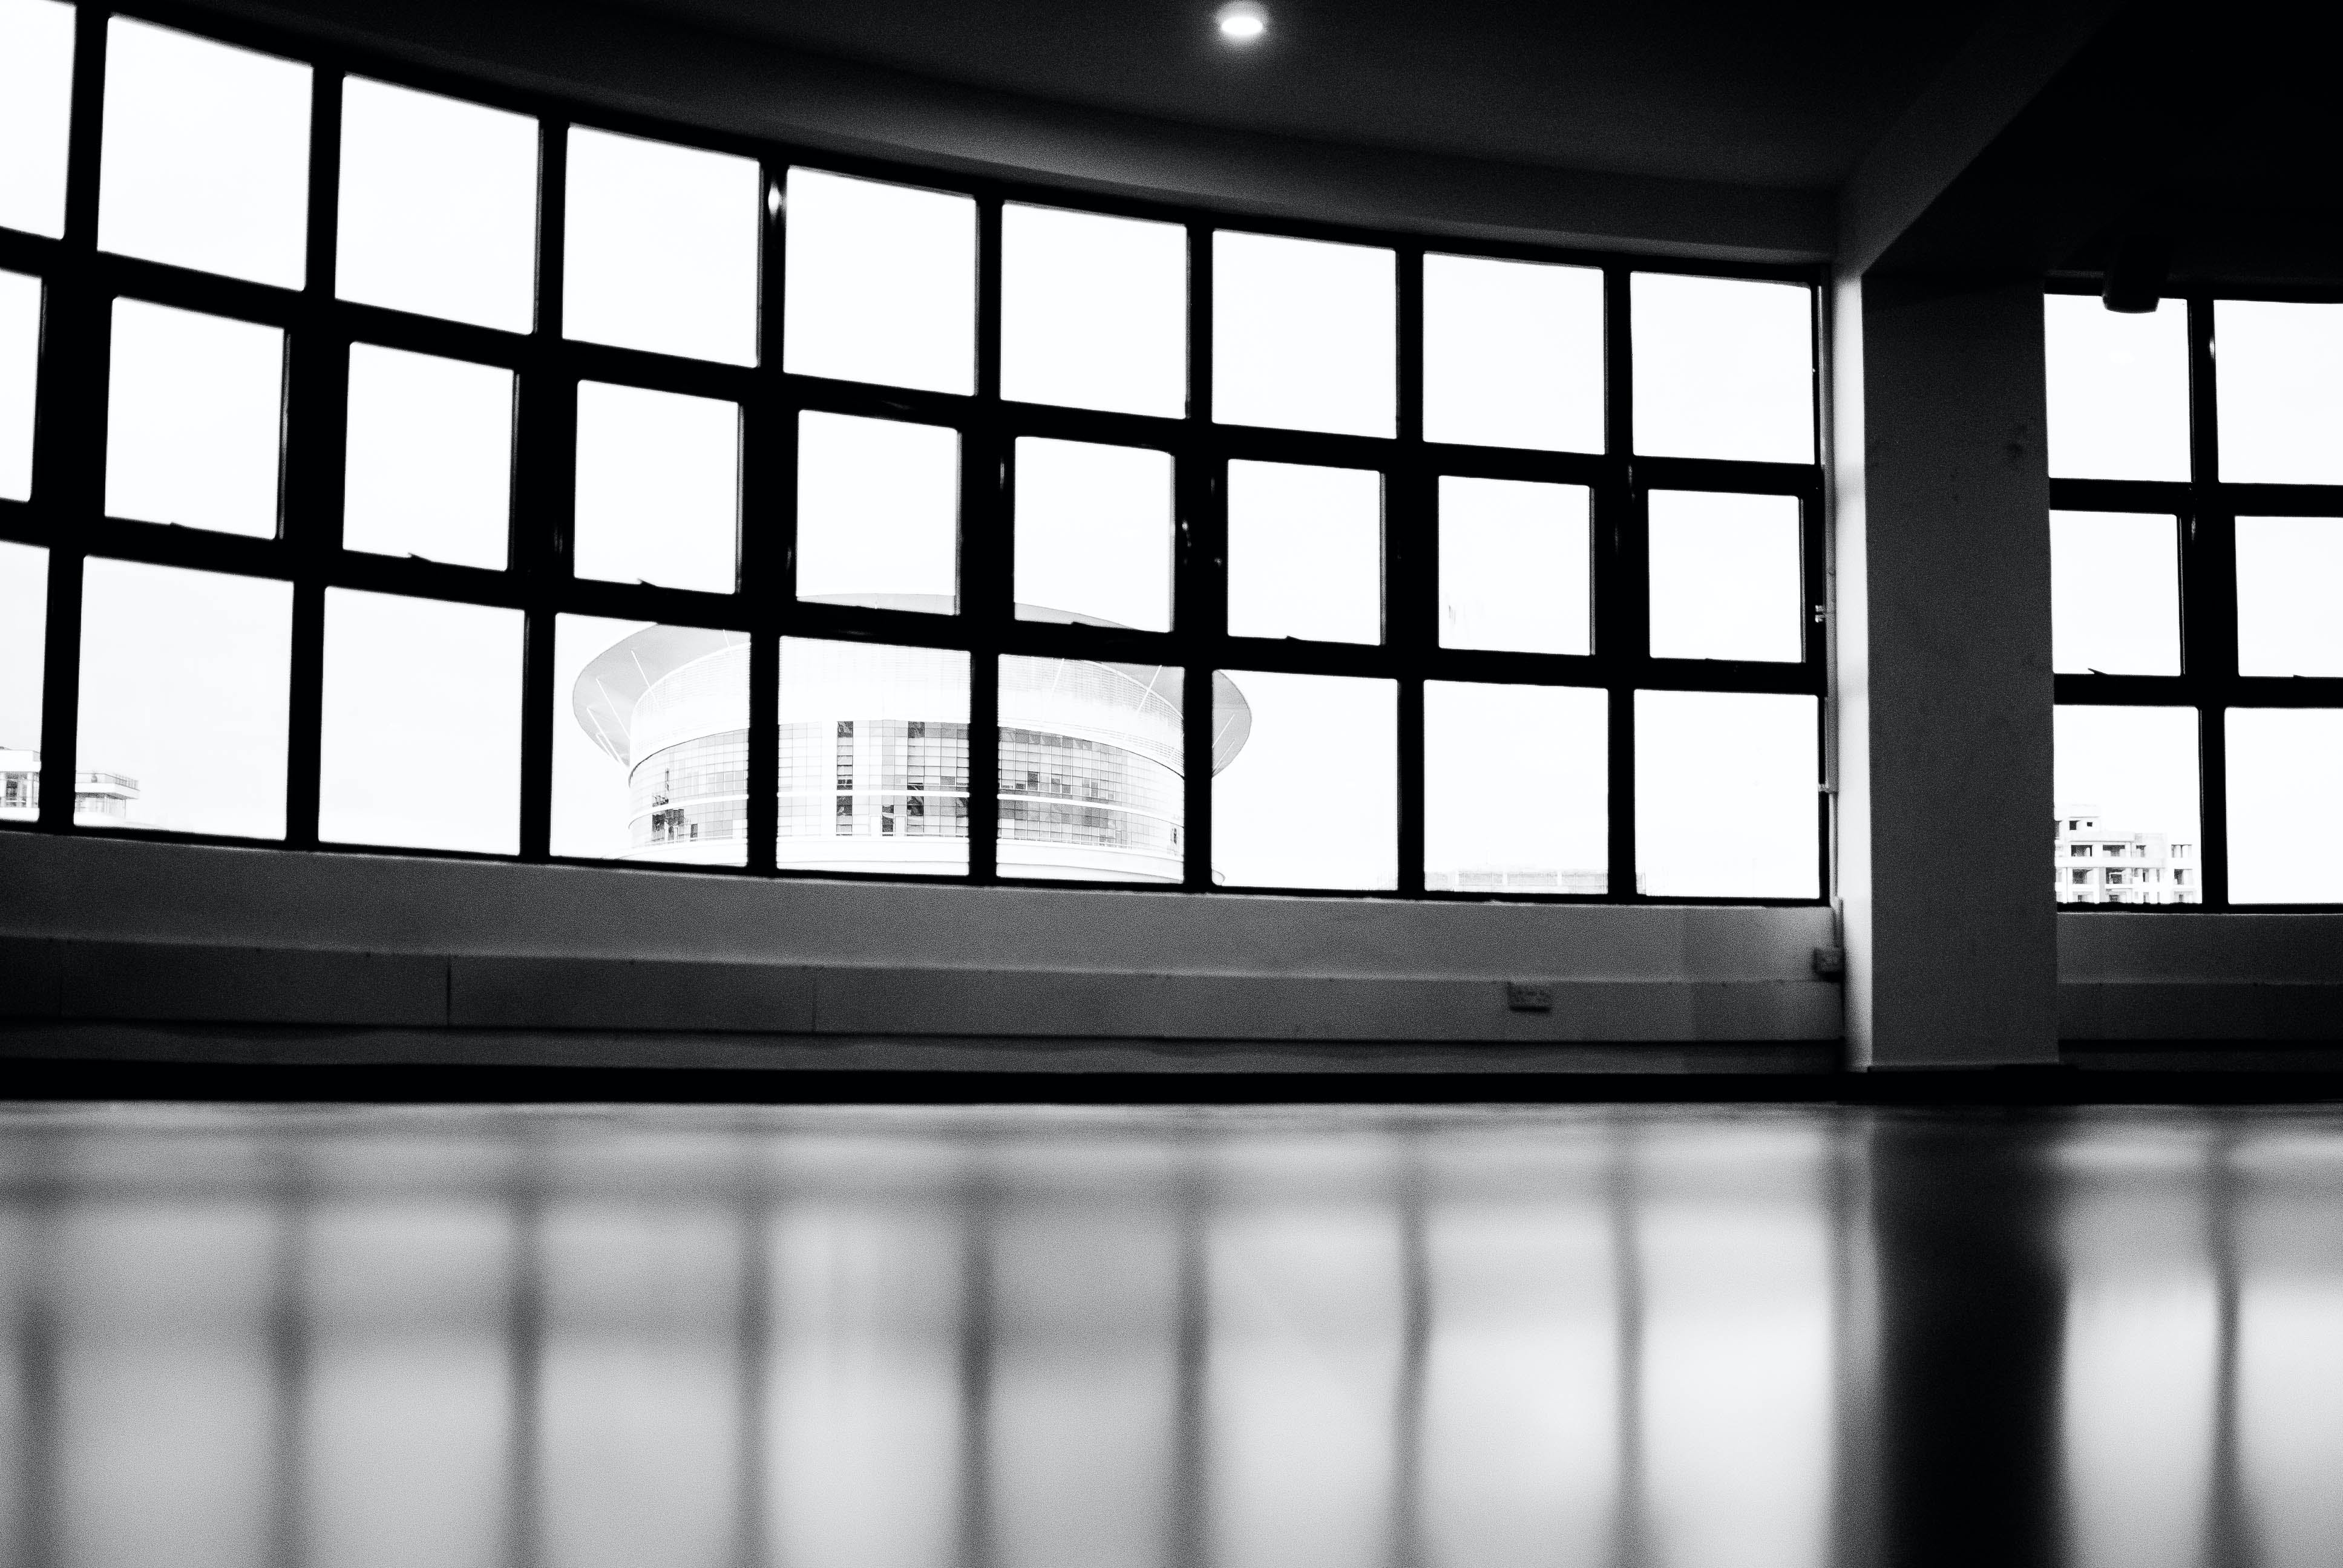 Low-angle and Grayscale Photography of Glass Pane Windows Overlooking Round Building